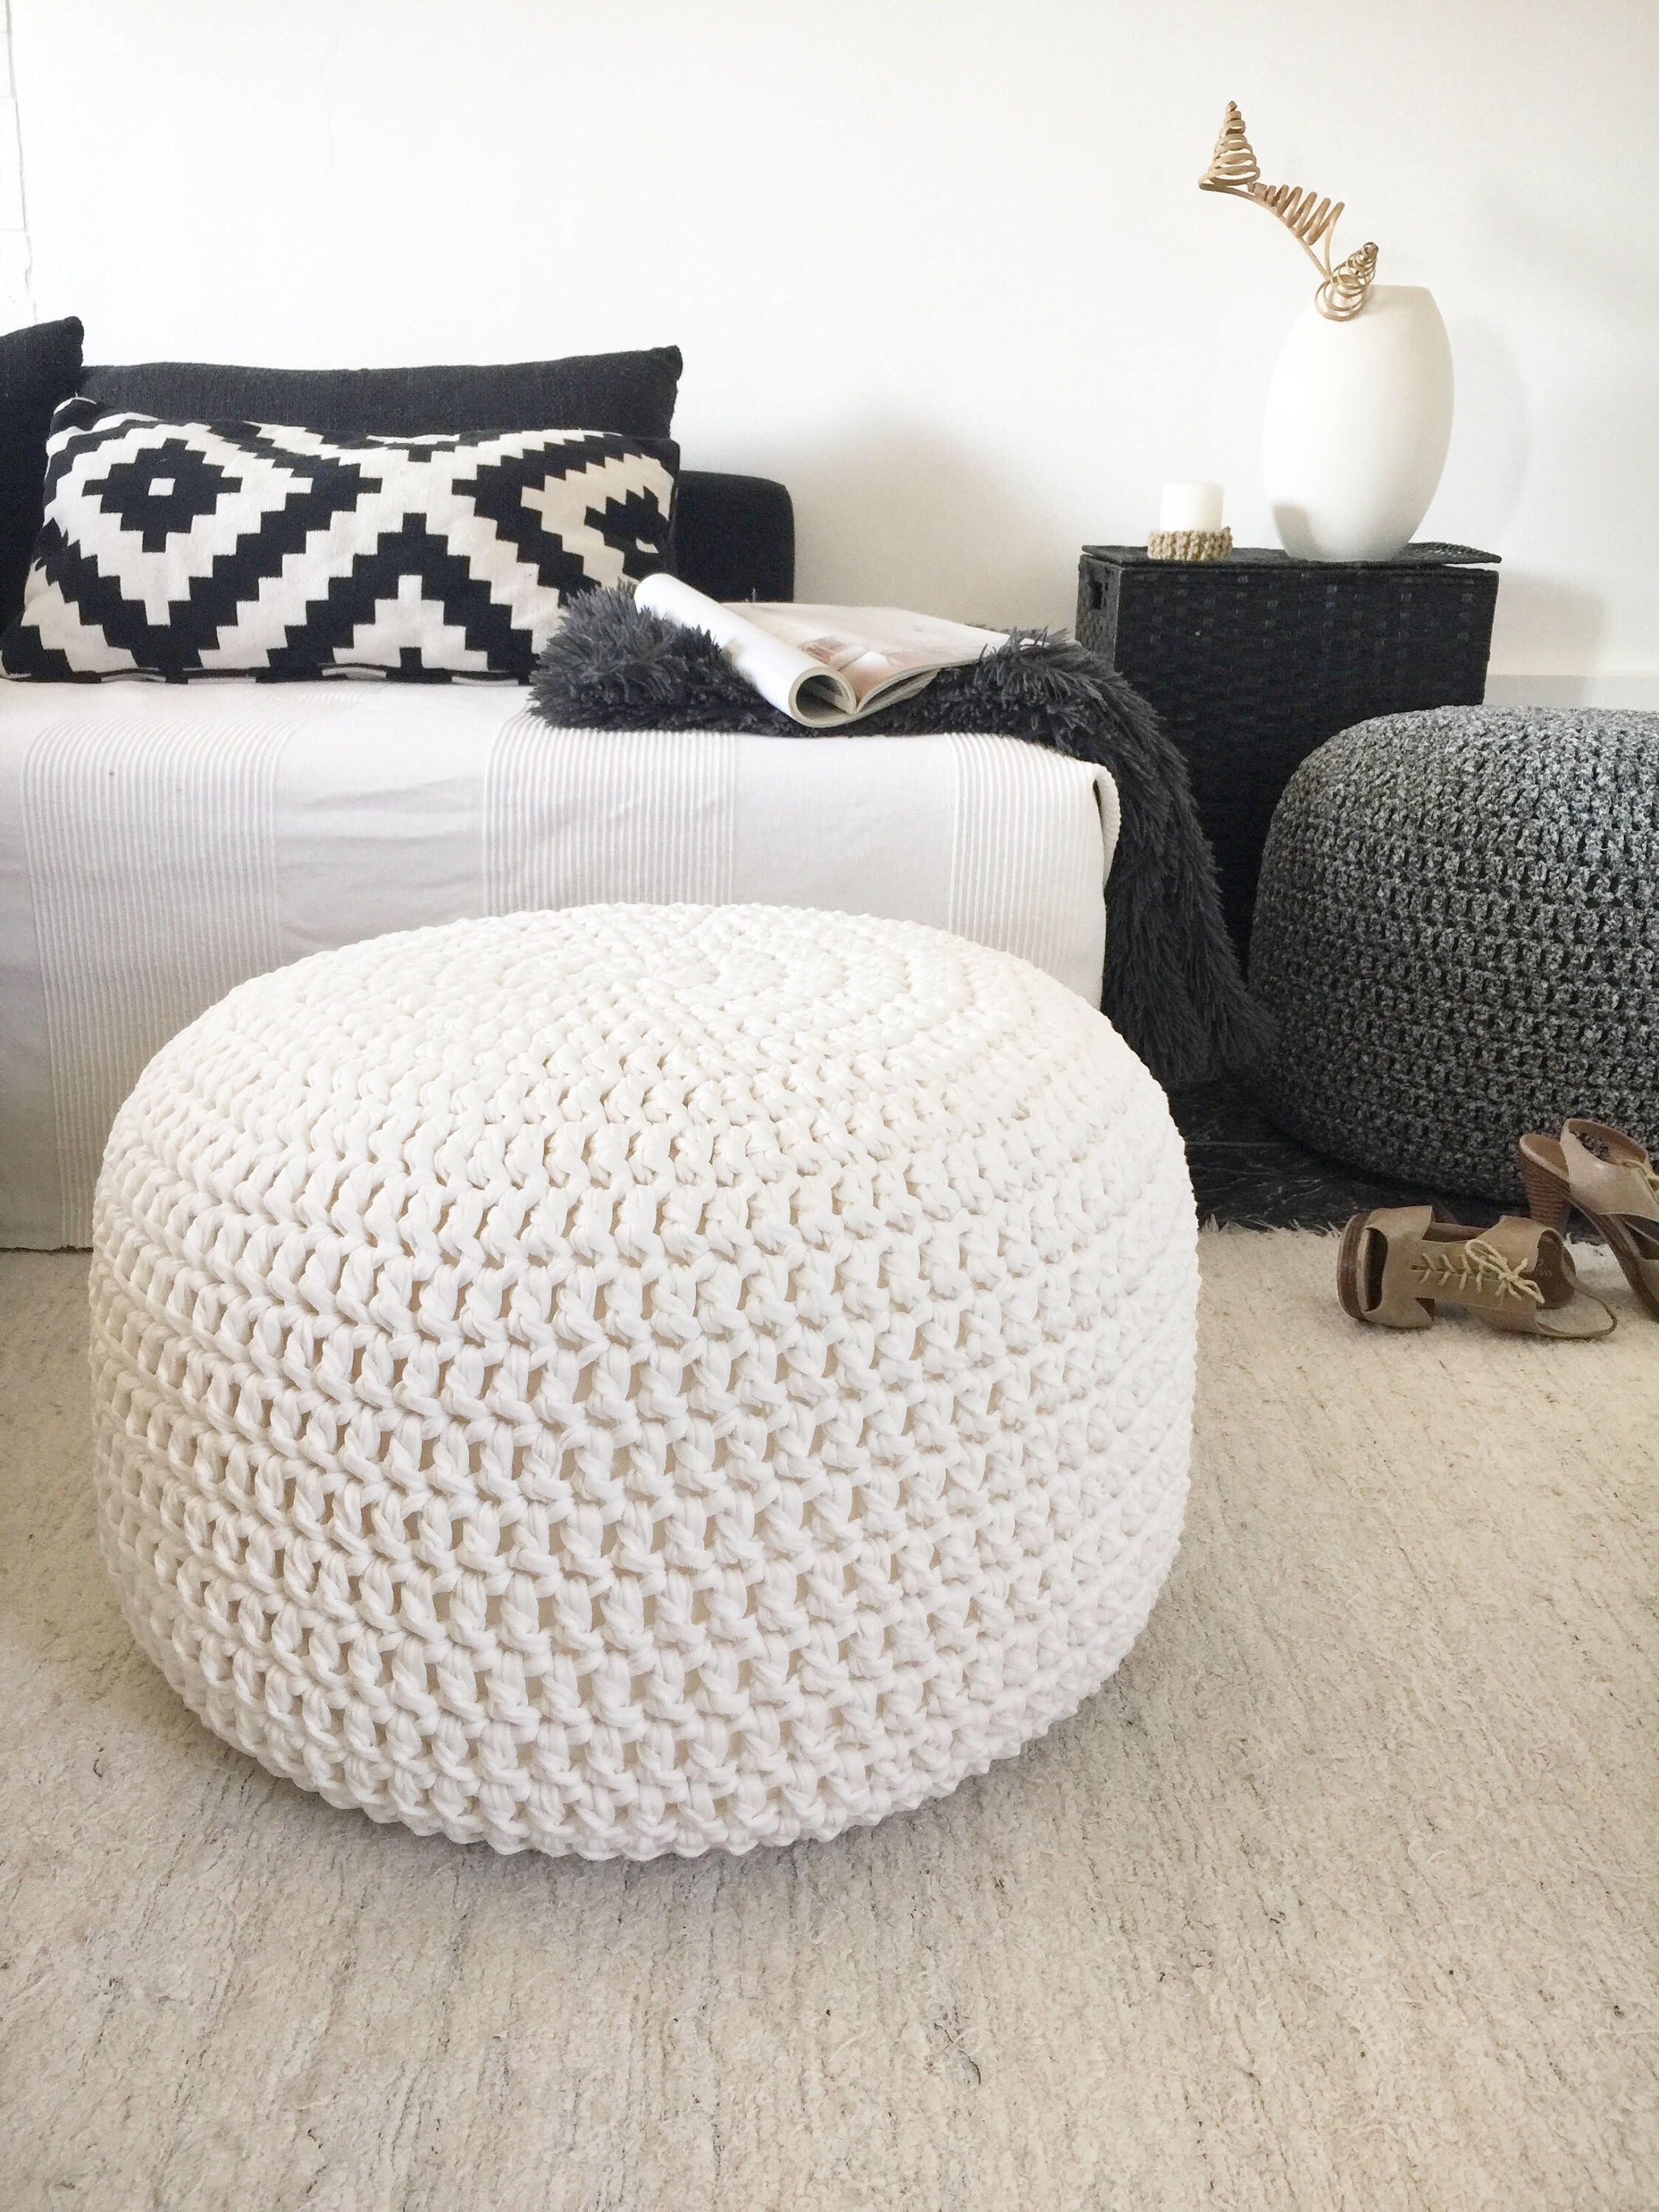 "Large Pouf Ottoman Magnificent Large Stuffed Crochet Pouf Ottoman Nursery Footstool 24"" Floor 2018"